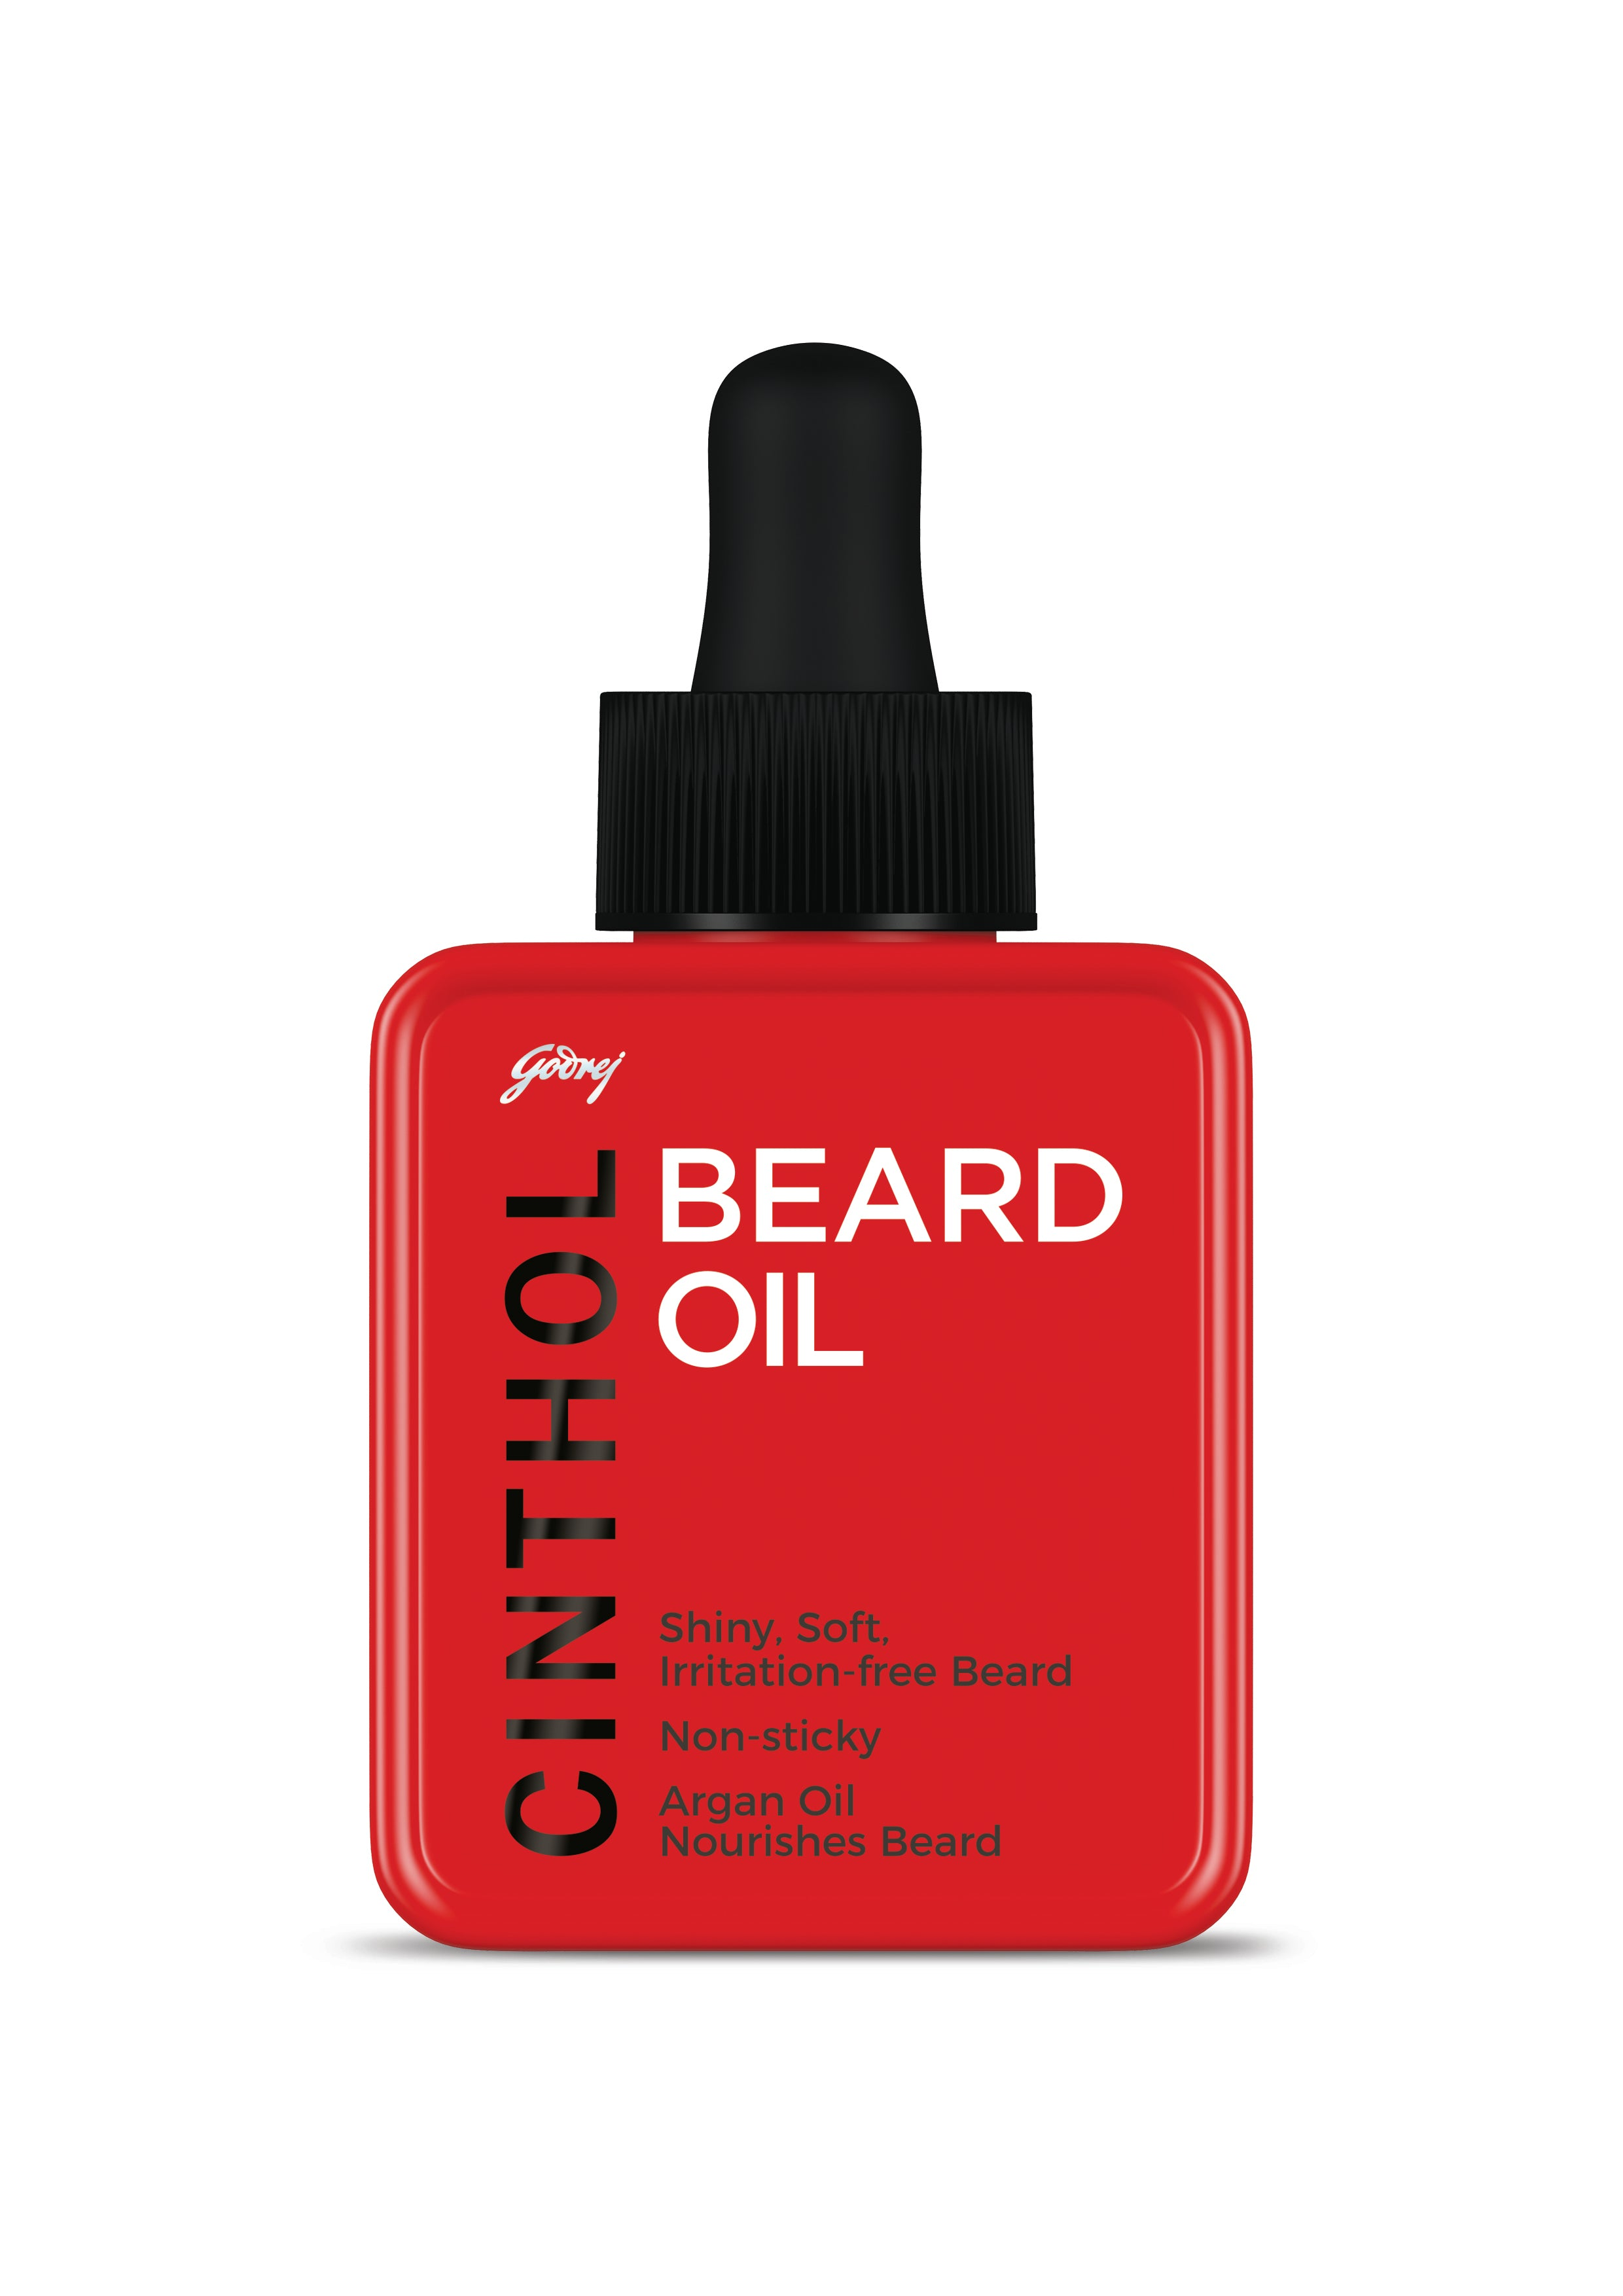 Cinthol beard oil